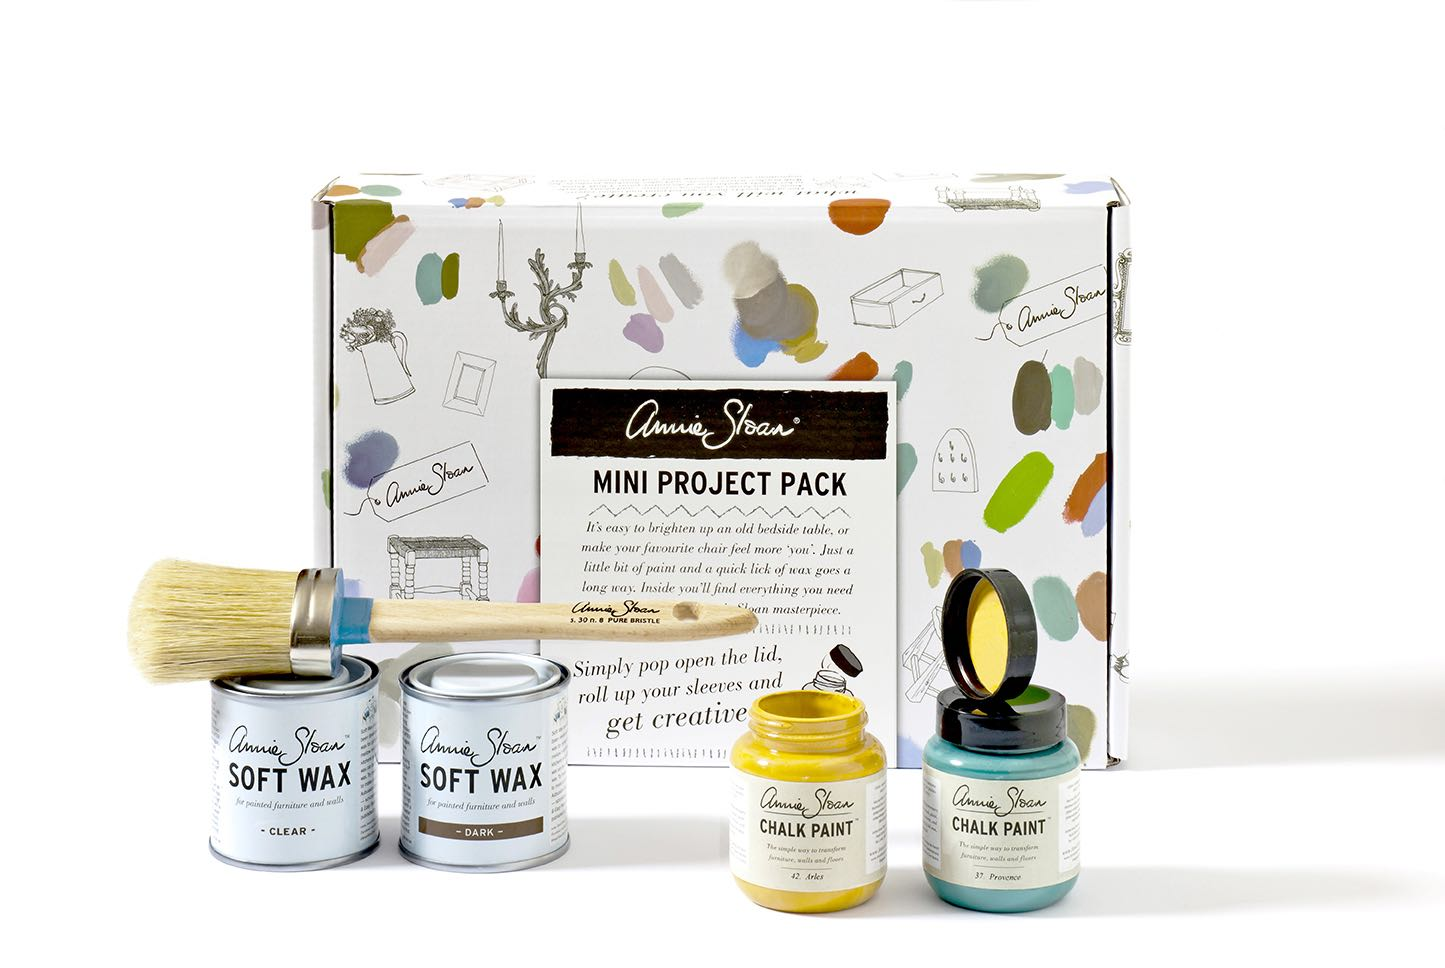 Chalk Paint ™ Mini Project Pack